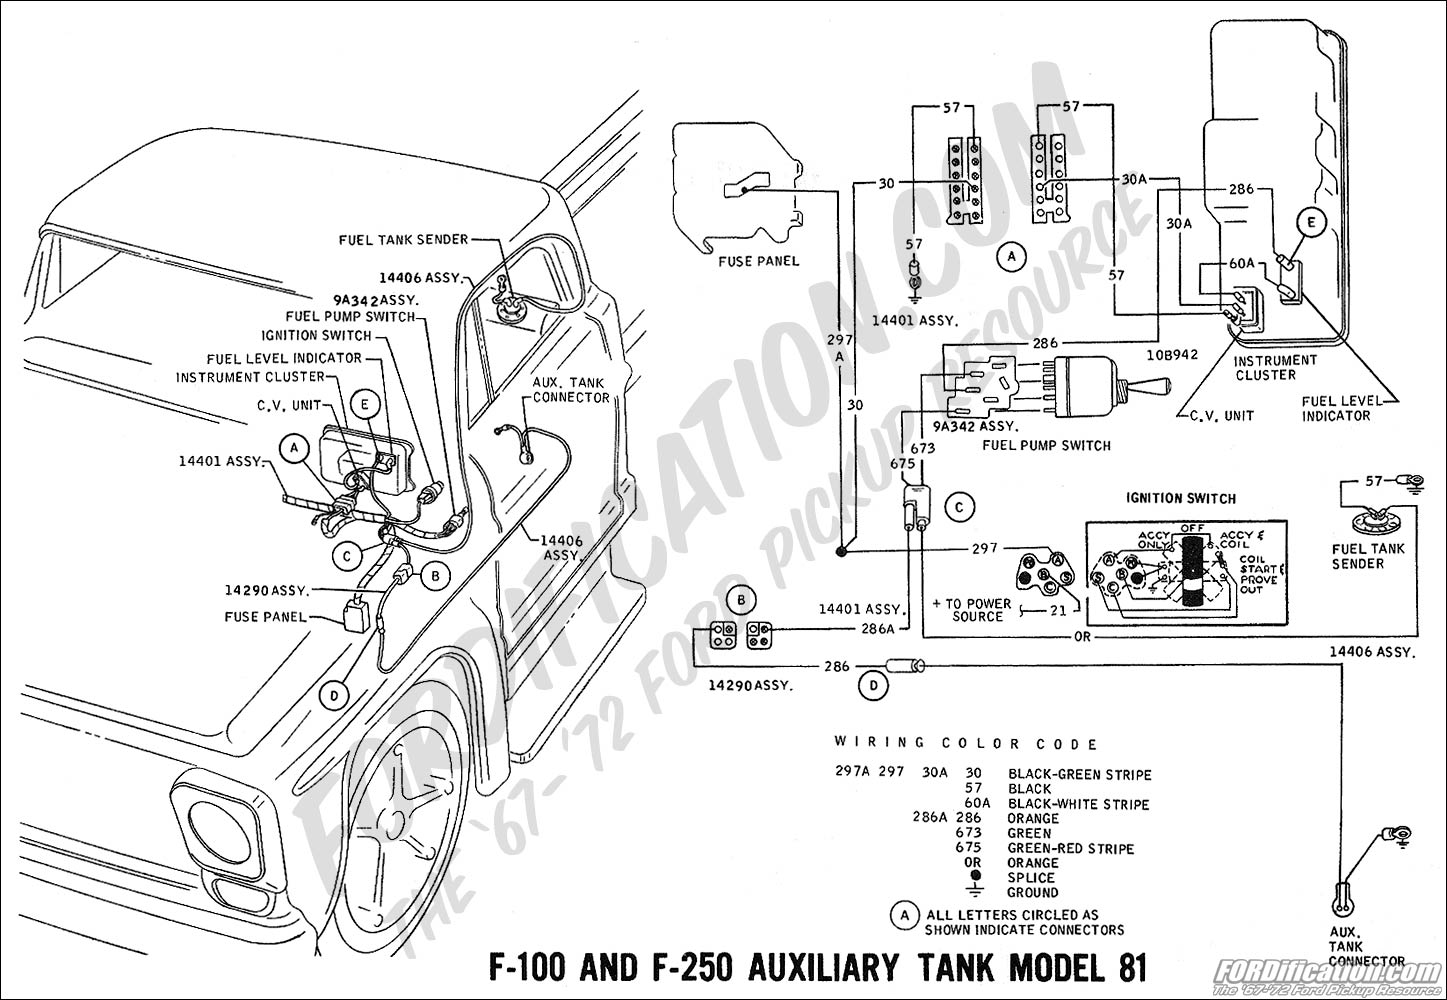 wiring_69aux fuel 69 f100 wiring diagram 1973 ford f100 wiring diagram \u2022 wiring Ford E-350 Fuse Box Diagram at n-0.co